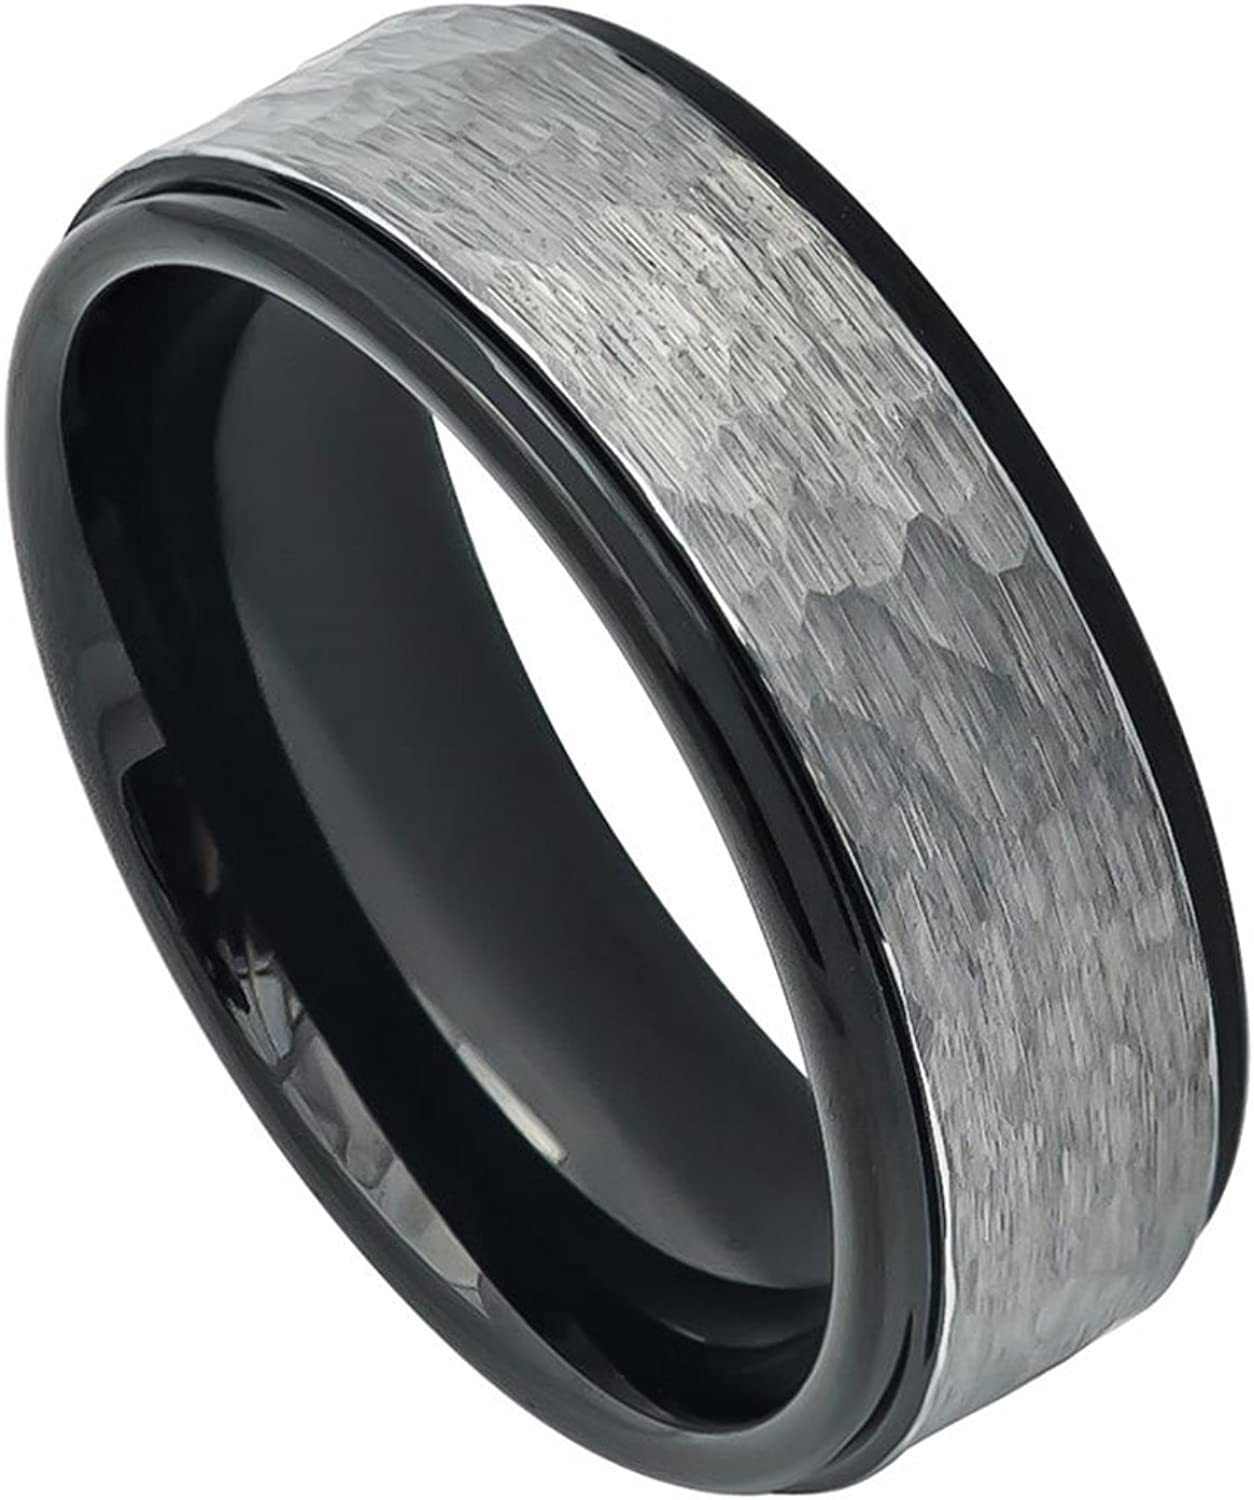 8mm Tungsten Carbide Two-Tone Hammered Gun Metal Brushed Finish Black IP Inner Ring Stepped Edge Wedding Band Ring